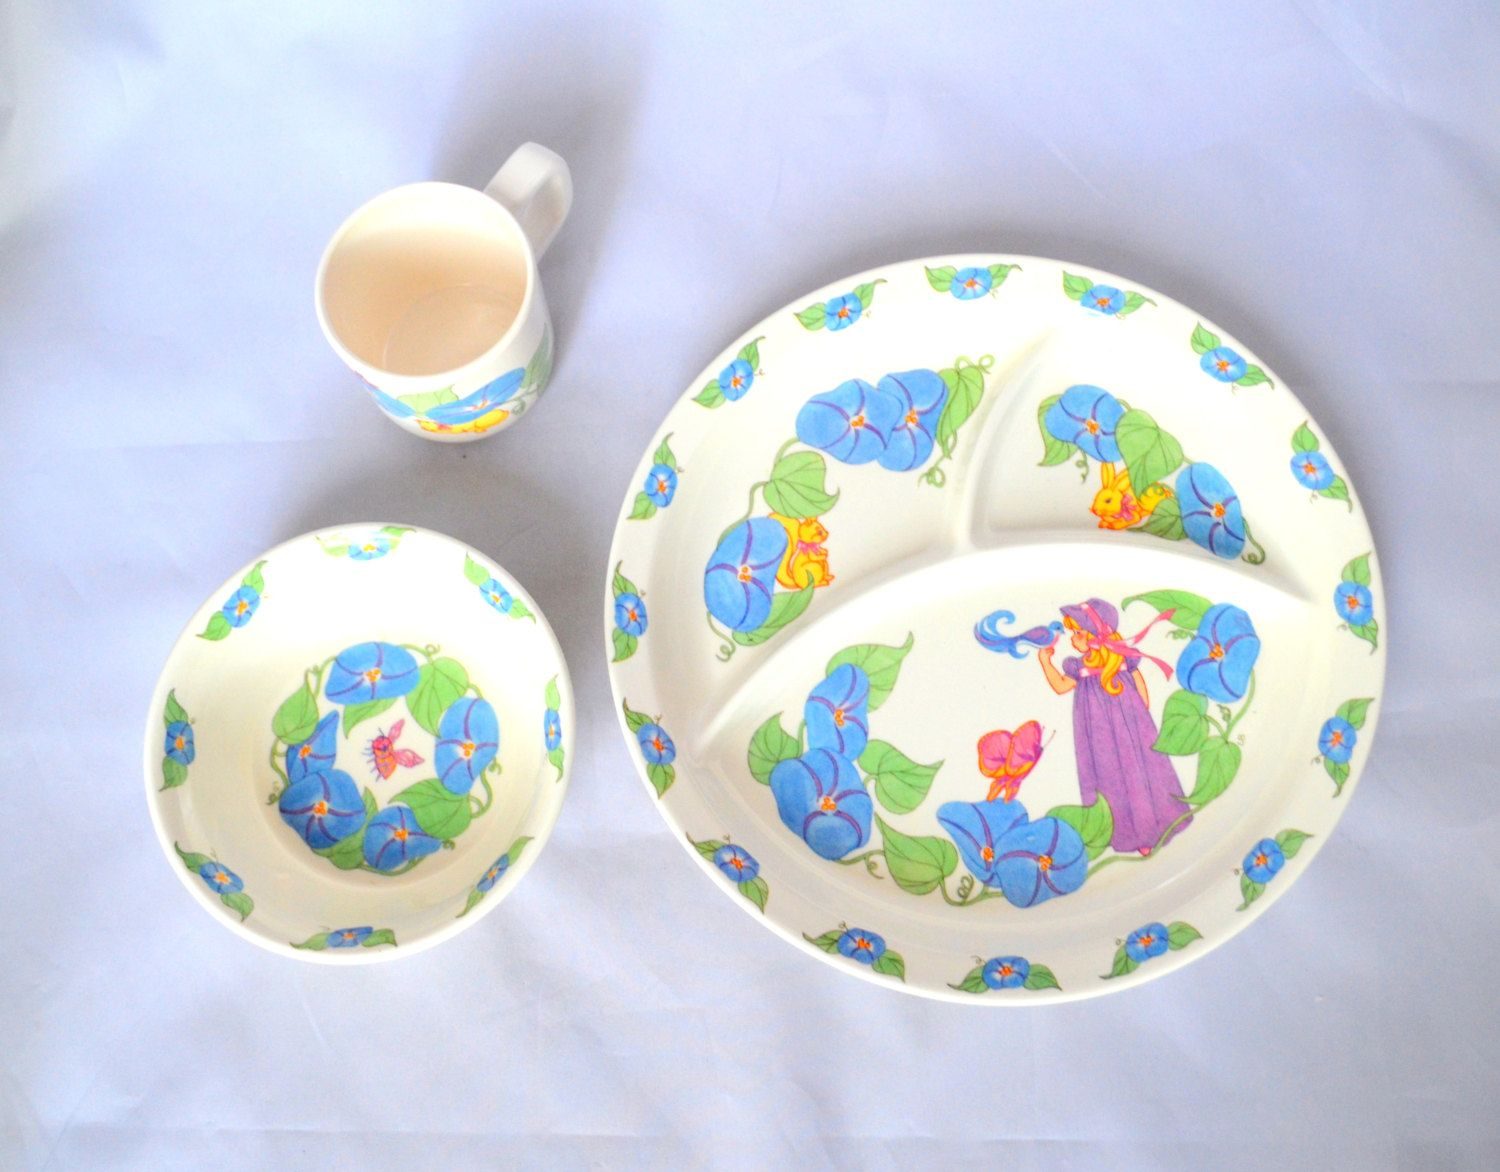 Vintage Anacapa Melamine Ware 3 Piece Children 39 S Dish Set Divided Plate Bowl And Cup Girl With Blue Flowers And Anima Childrens Dishes Dish Sets Vintage